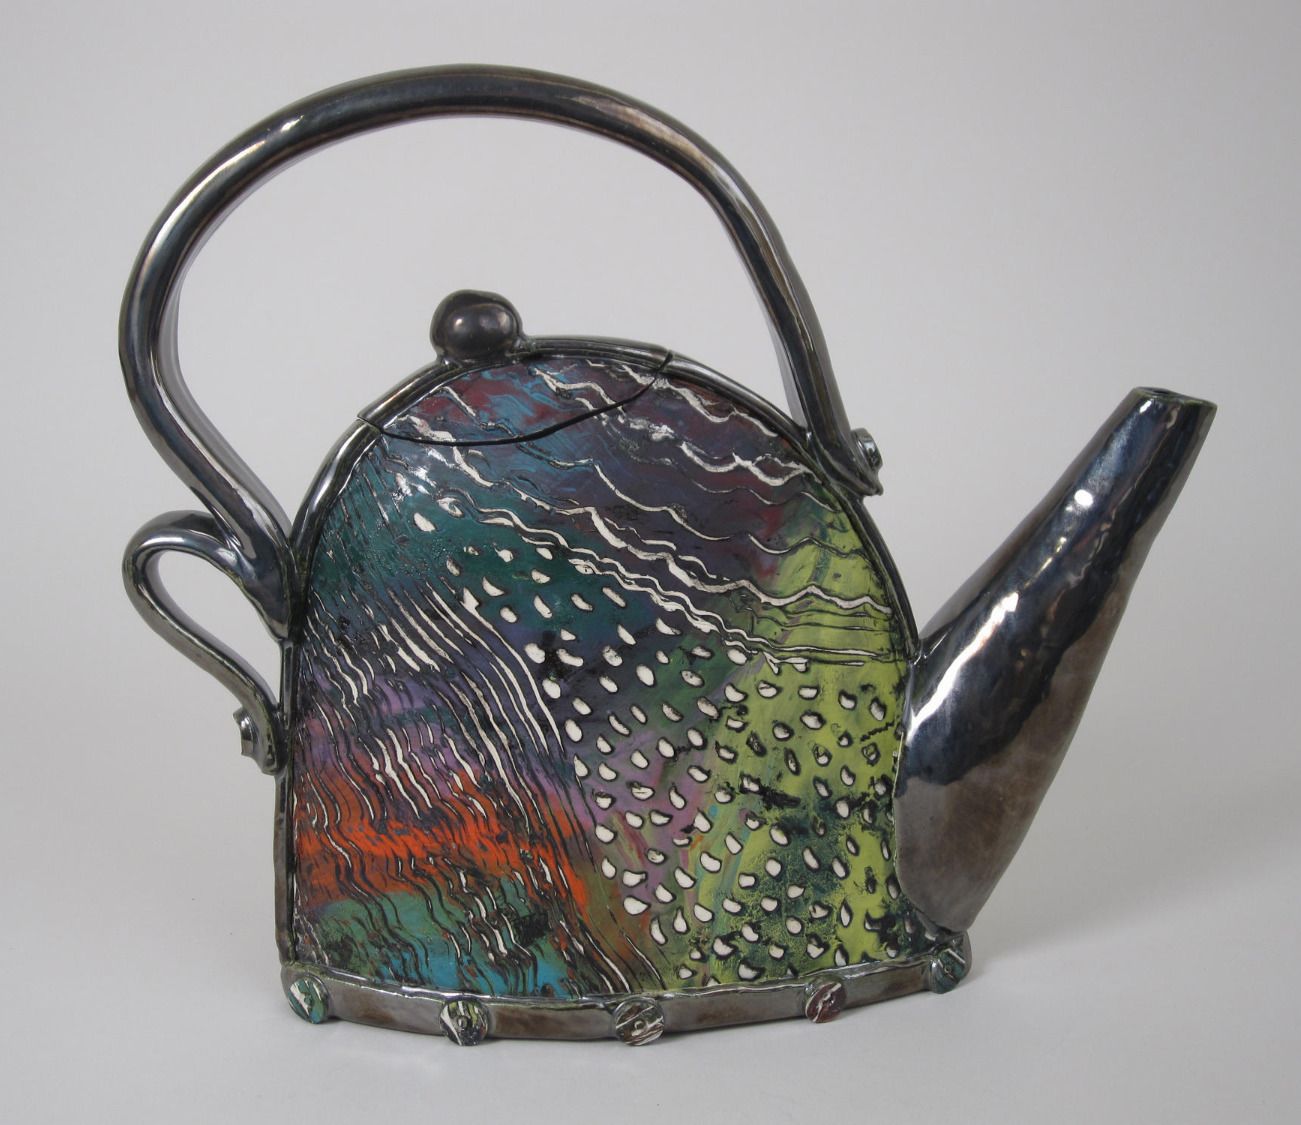 Stormy Day Teapot